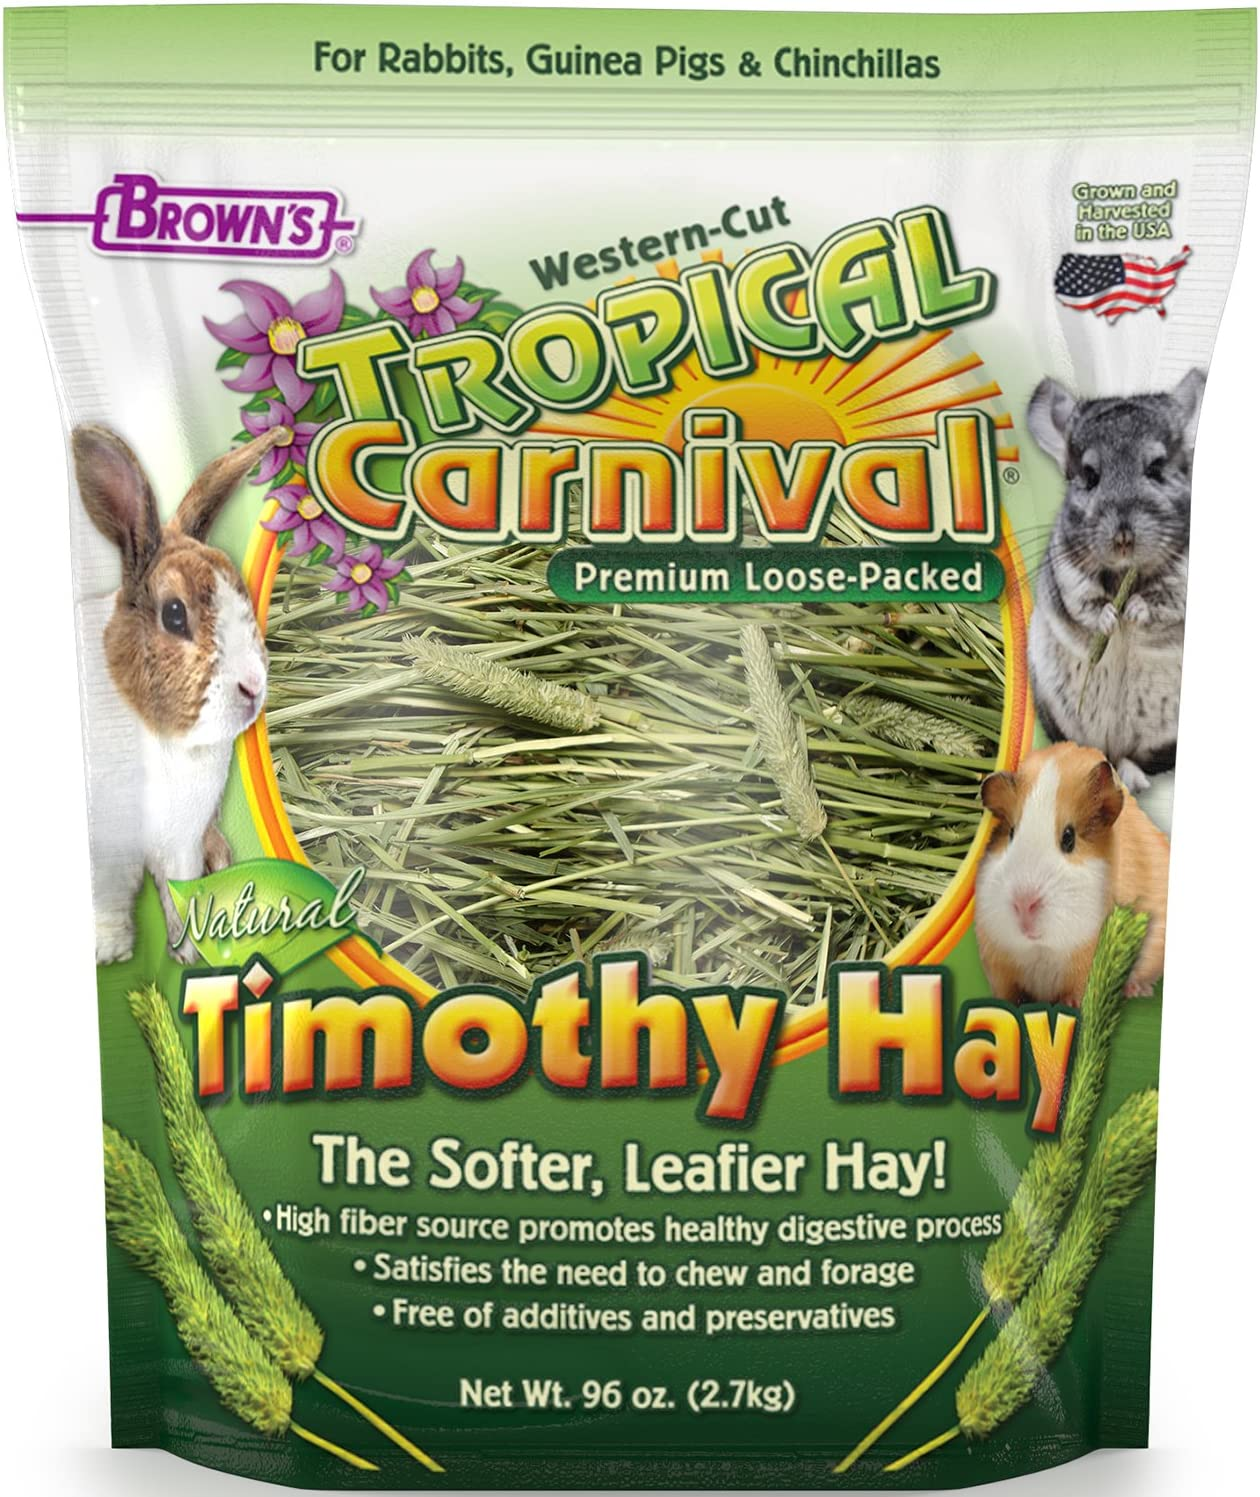 F.M. Brown's Tropical Carnival Natural Timothy Hay for Guinea Pigs, Rabbits, and Other Small Animals, with High Fiber for Healthy Digestion - 96 oz